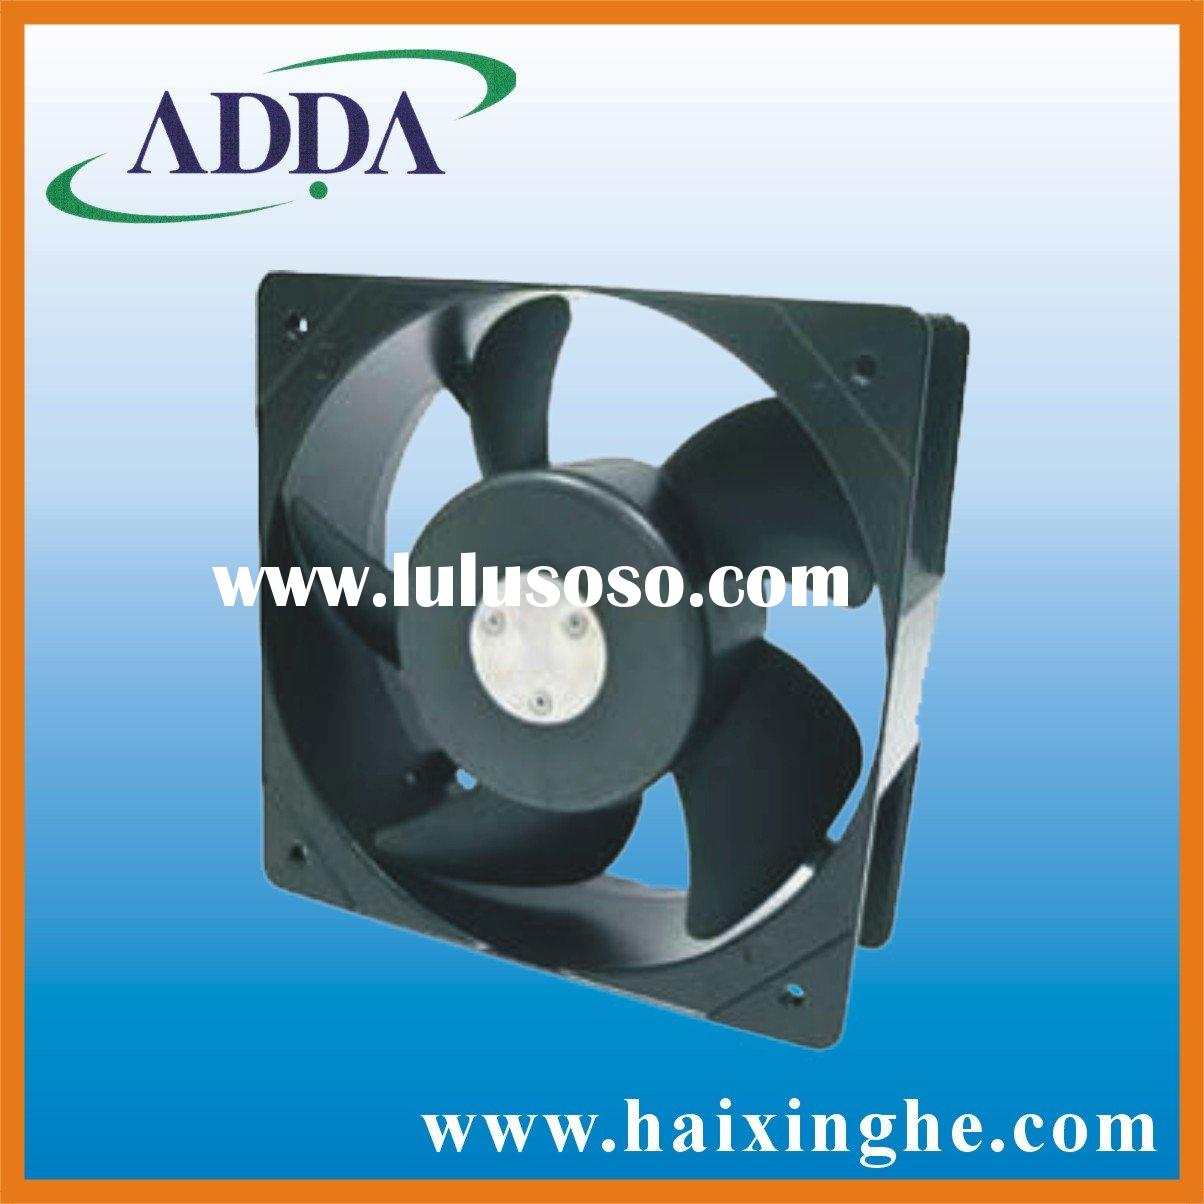 http://www.lulusoso.com/upload/20120329/Delta_220V_Brushless_AC_Case_Fan_205X205X72mm.jpg